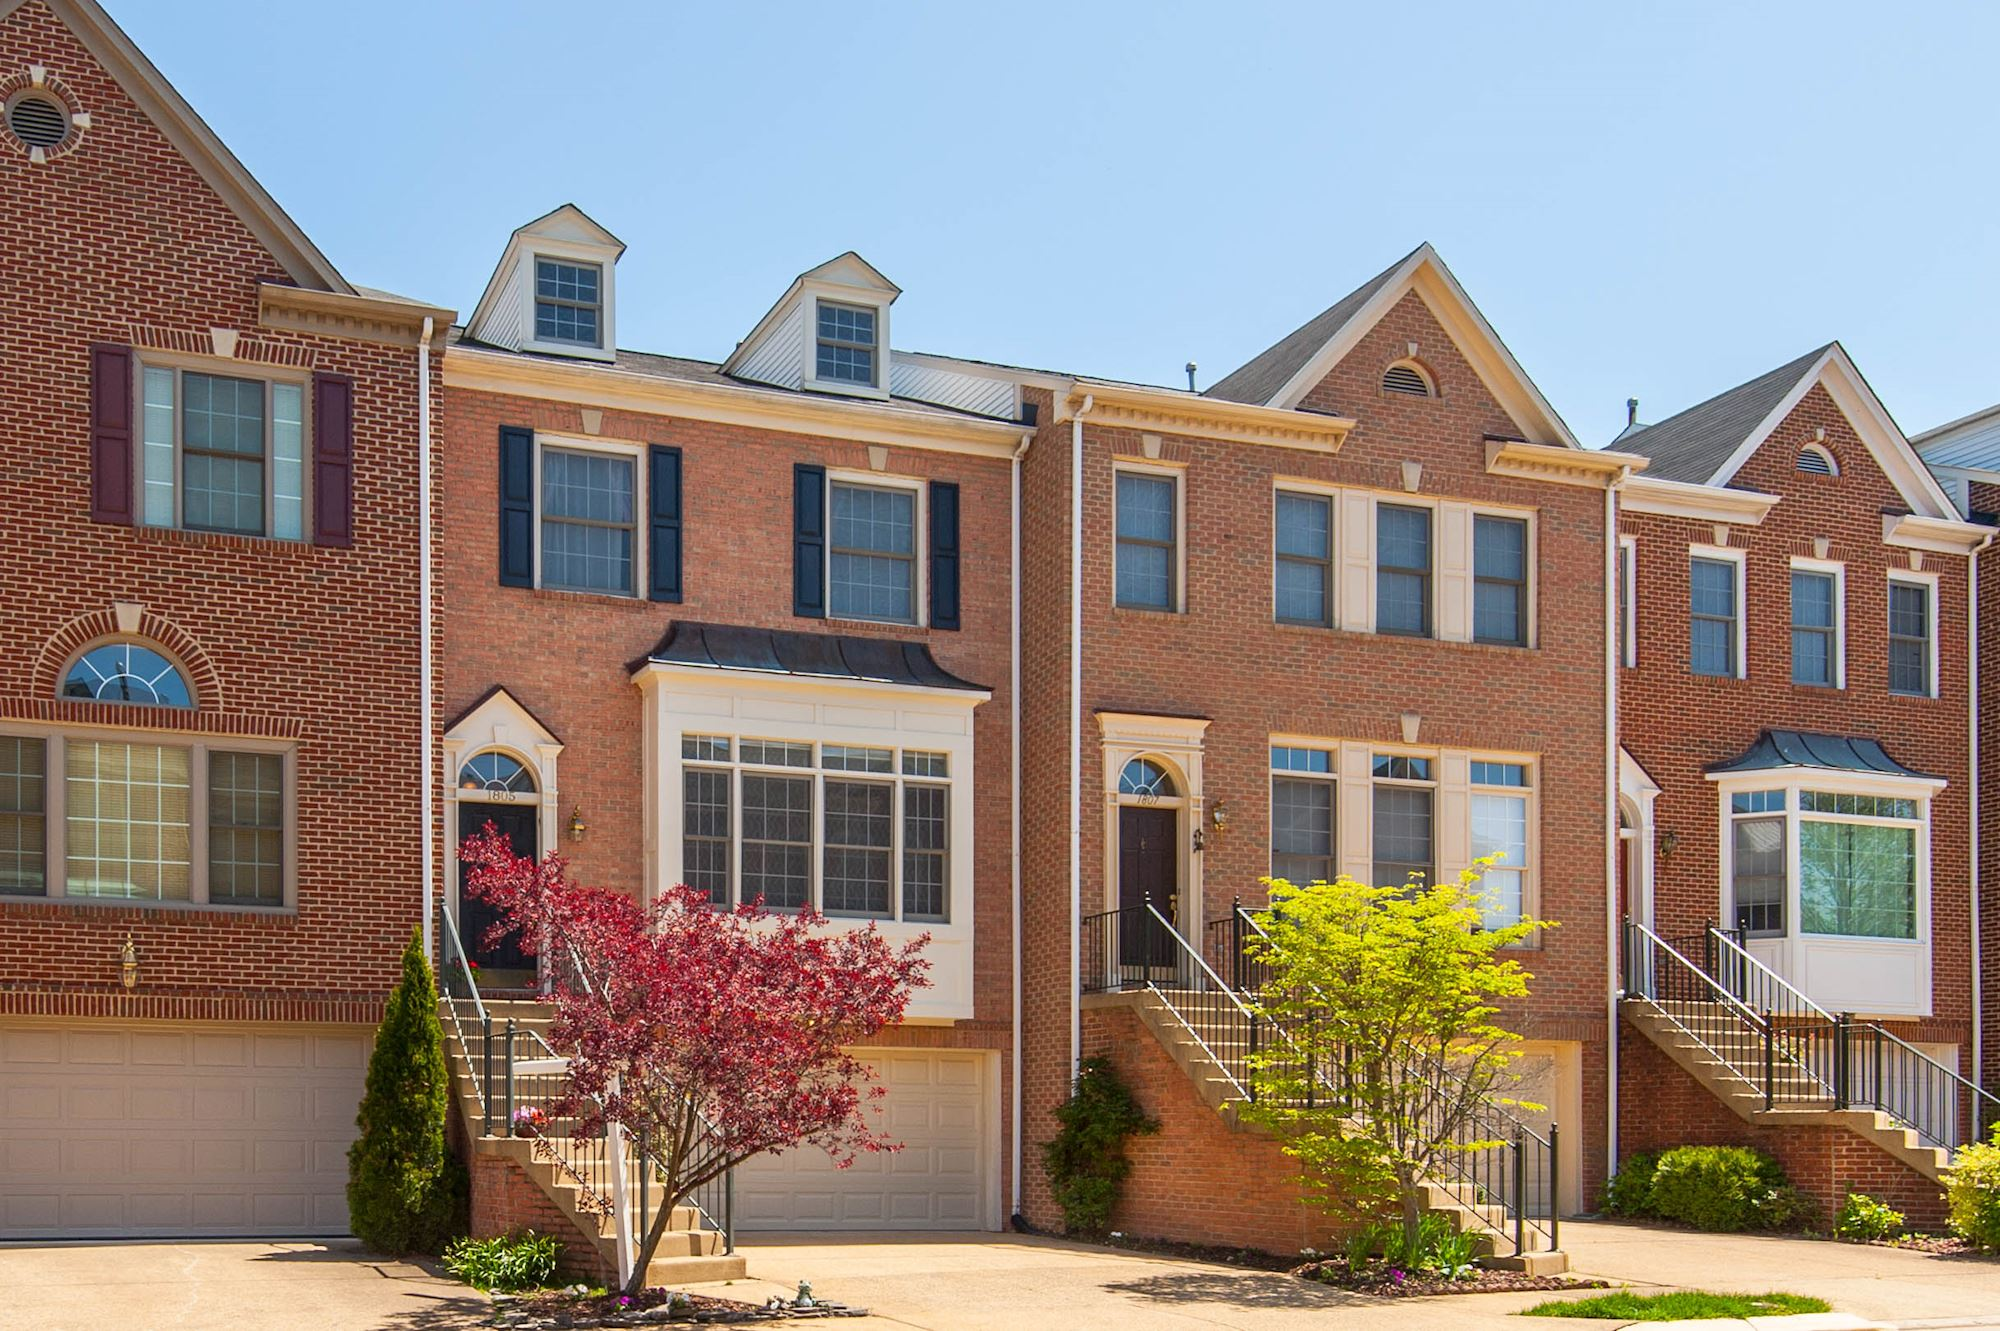 NEW LISTING: 3 BD Townhome in Vienna